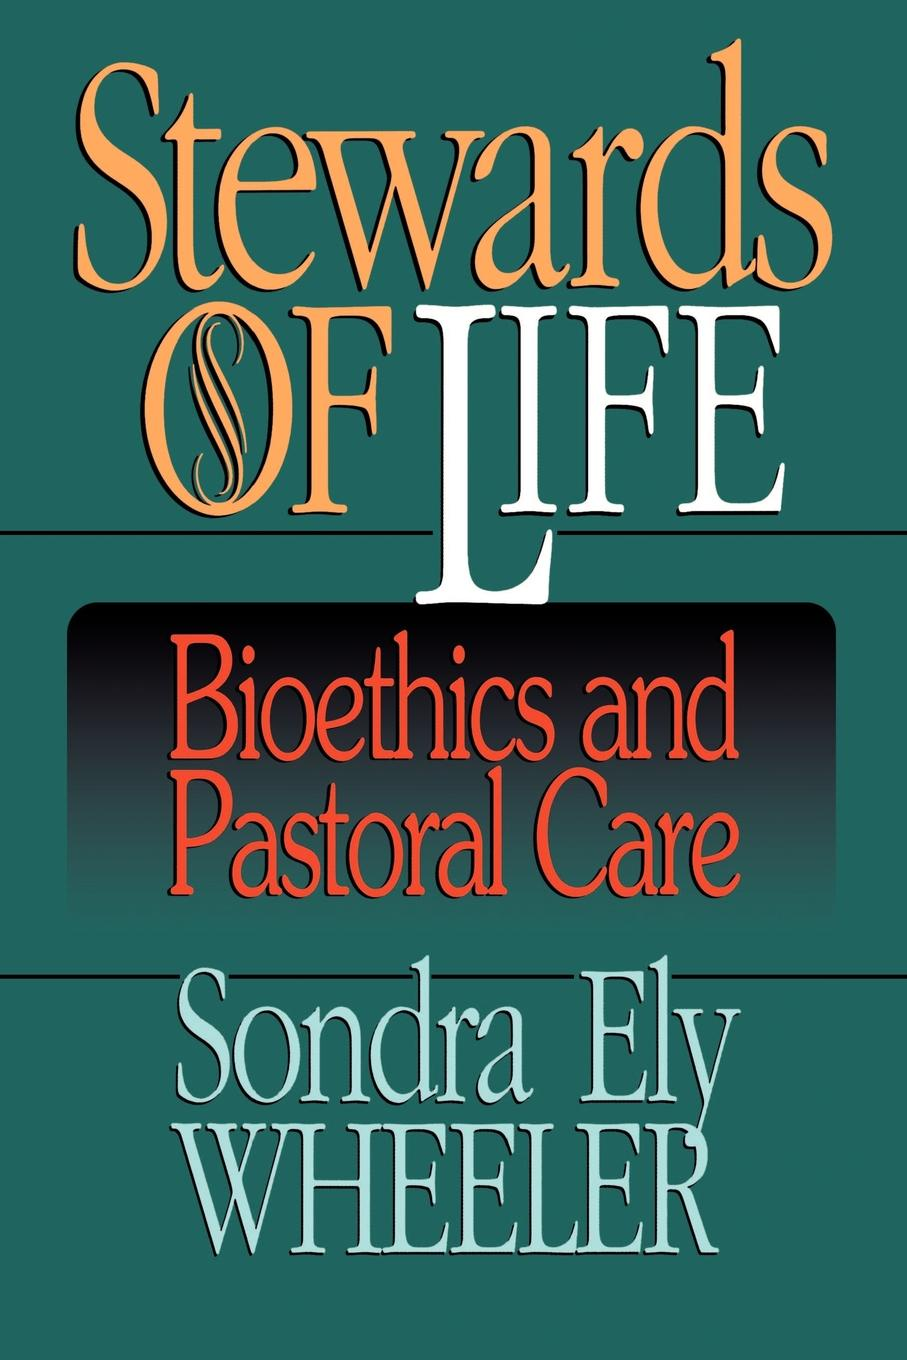 Sondra Wheeler Stewards of Life. Bioethics and Pastoral Care richard george boudreau incorporating bioethics education into school curriculums